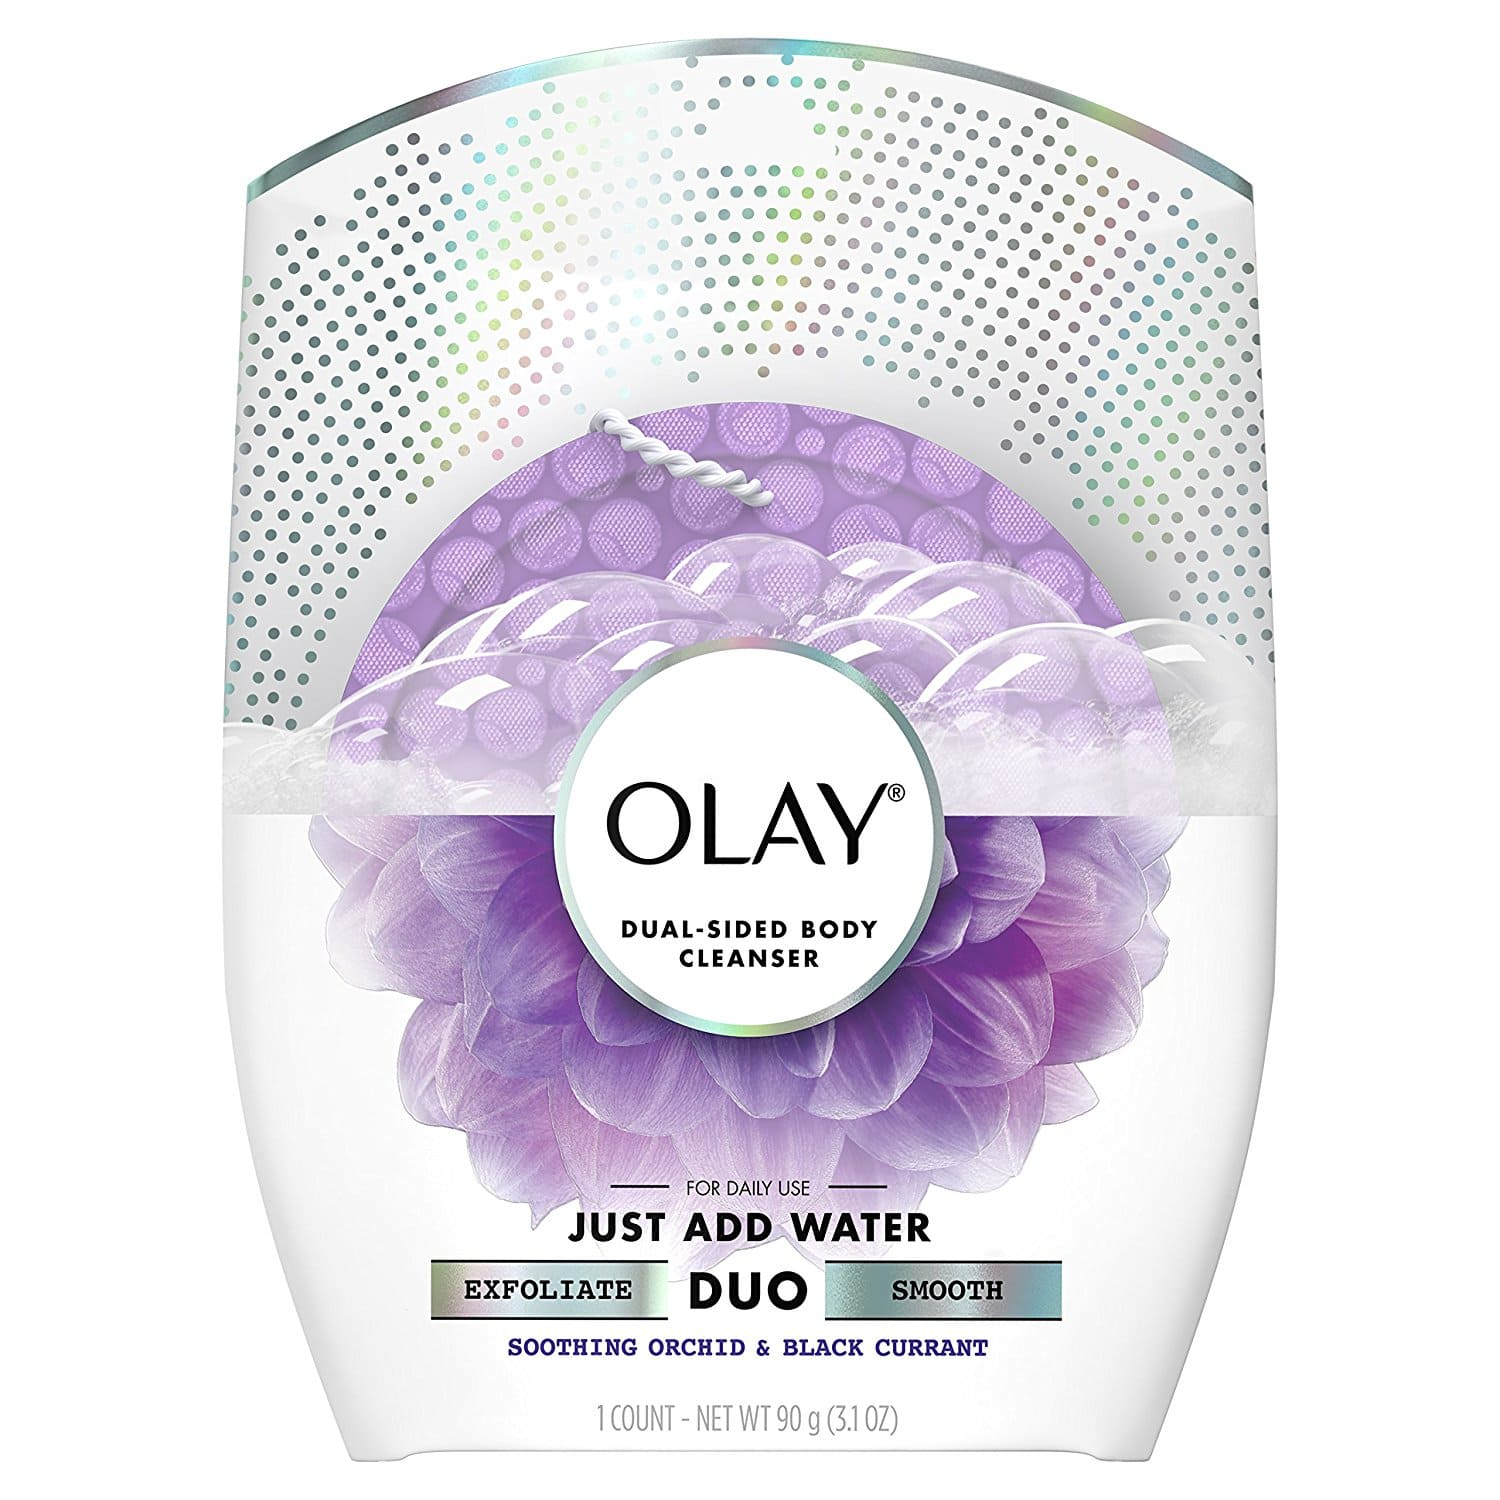 Add-on Item: Olay Body Cleansing Duo Soothing Buffer for $3.97 @Amazon